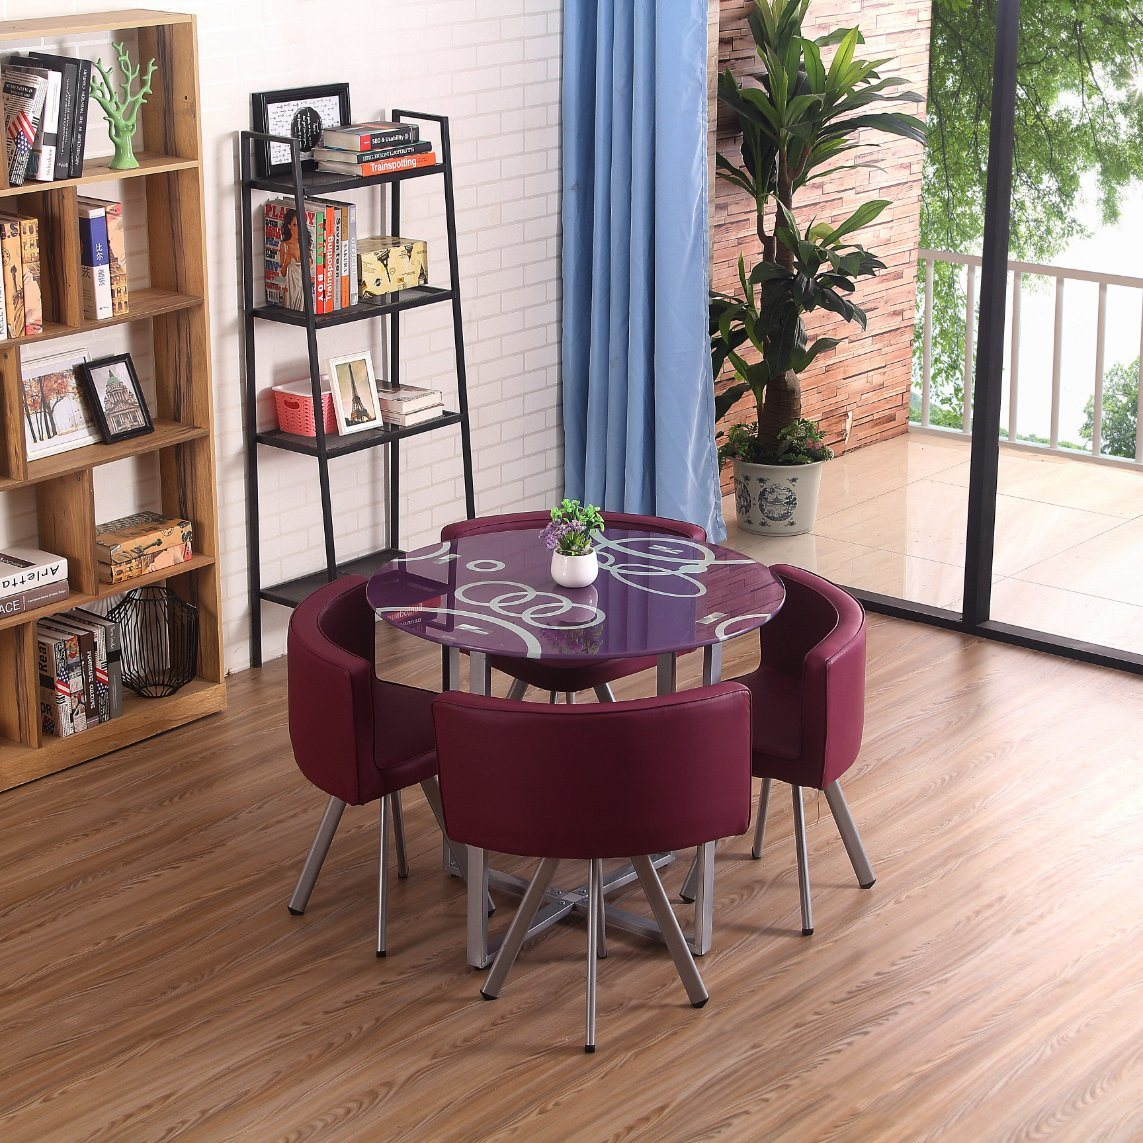 China Whole Dining Room Furniture, Dining Room Furniture Sets